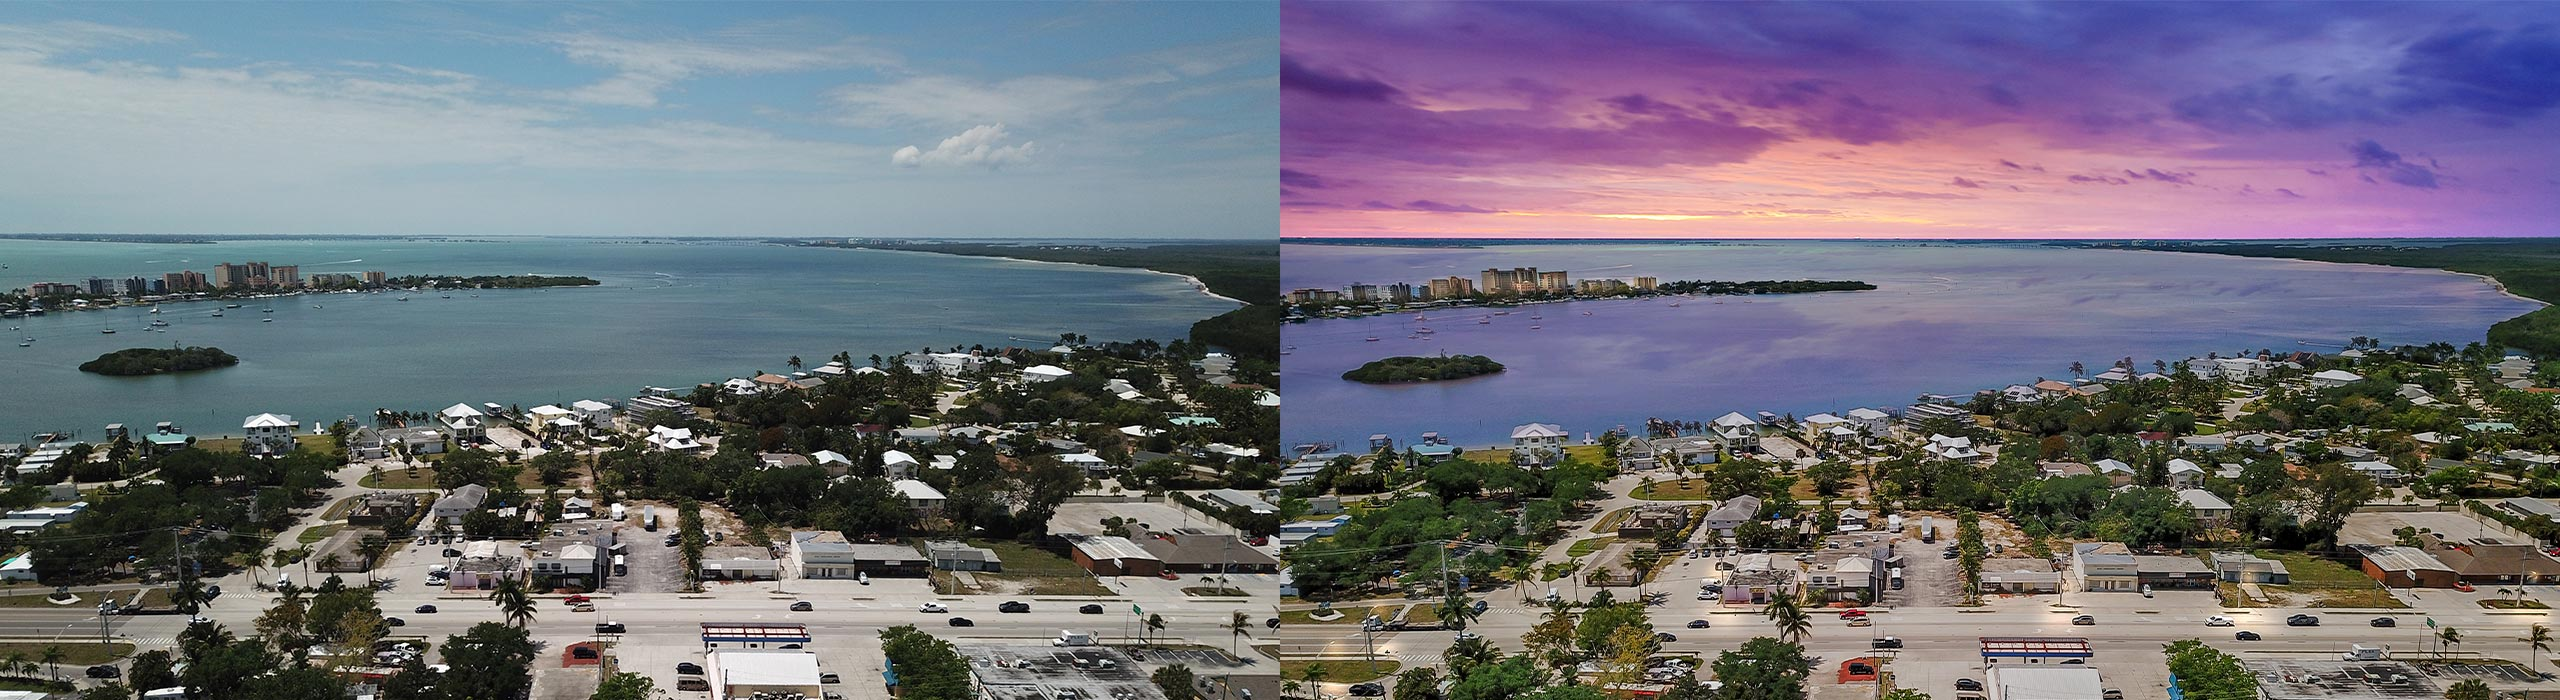 Commercial Day to Dusk – before and after